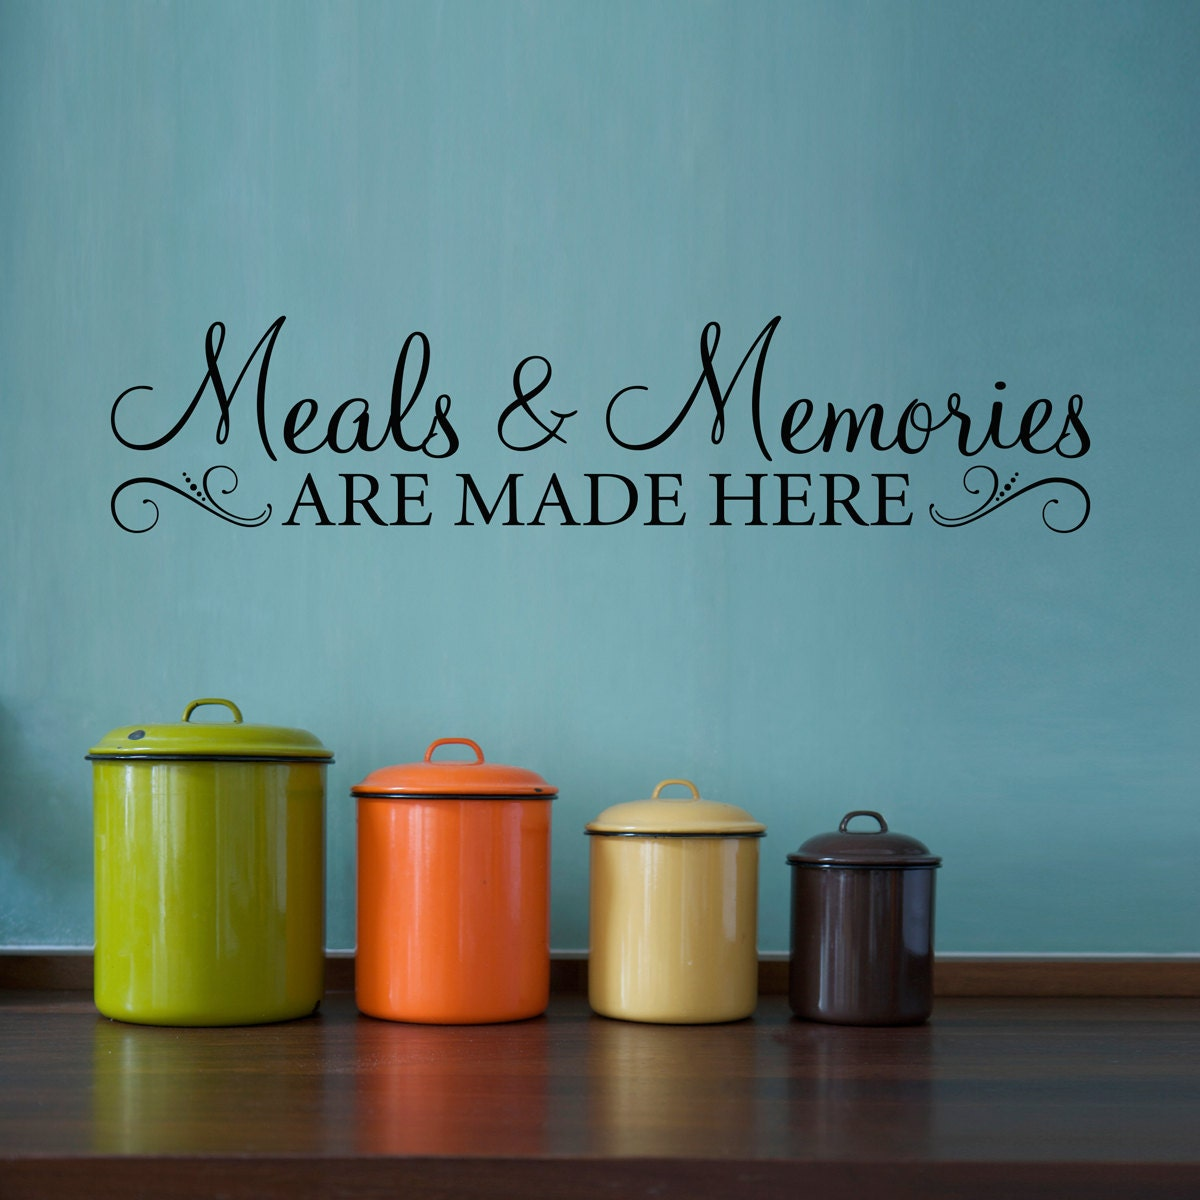 Kitchen Wall Groupings: Meals & Memories Decal Kitchen Quote Wall Decal Meals And